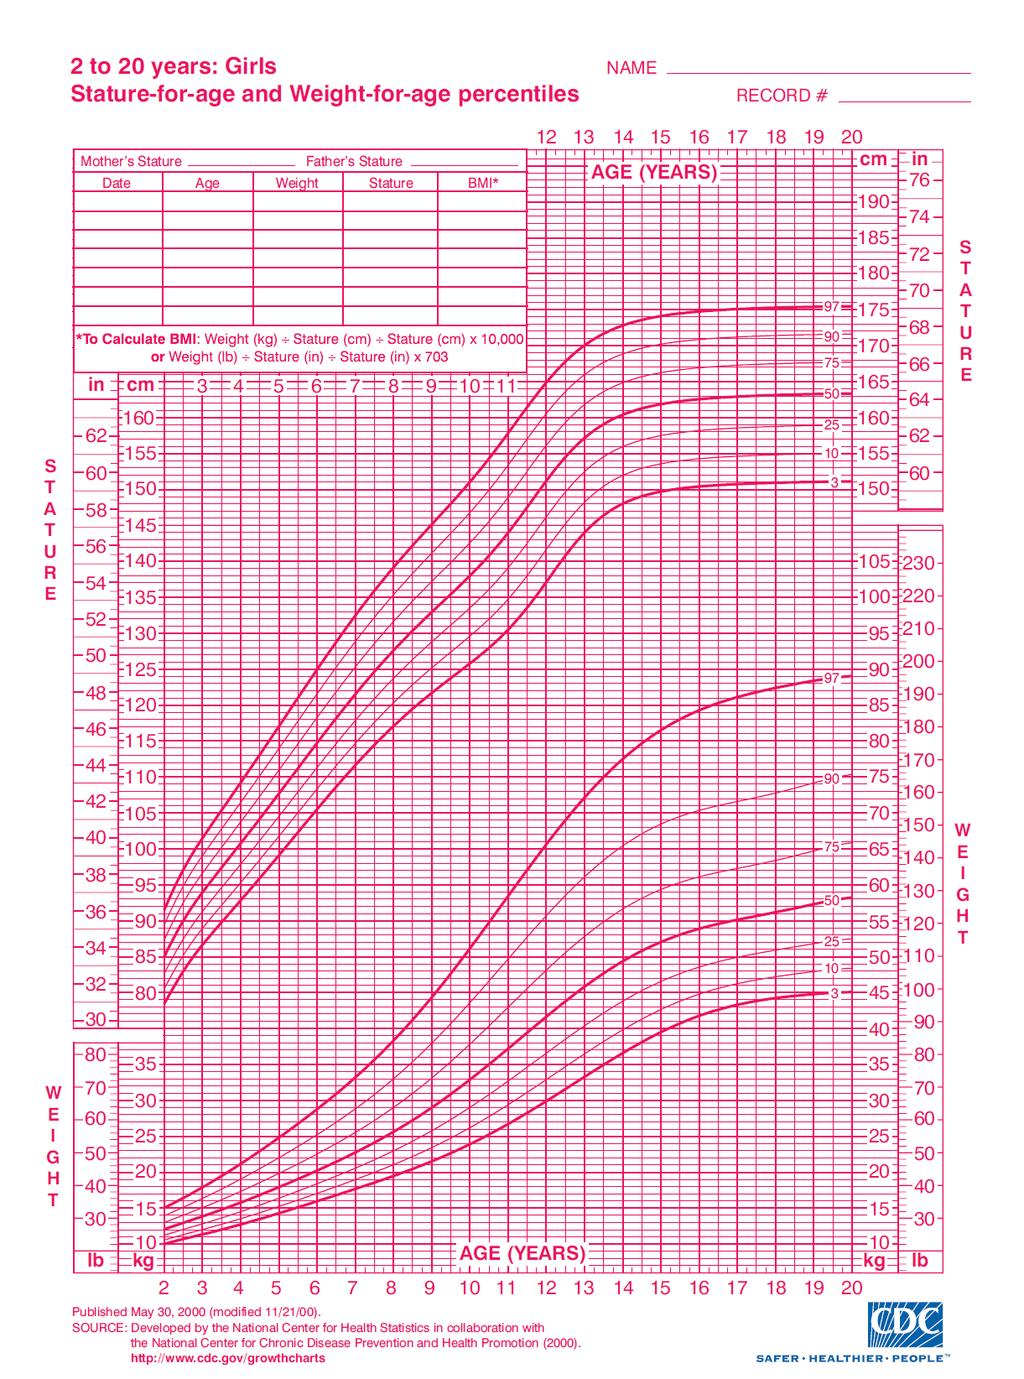 Growth chart for girls 2 to 20 years images free any chart examples growth chart for girls 2 20 choice image free any chart examples prescribing patterns of central nvjuhfo Gallery